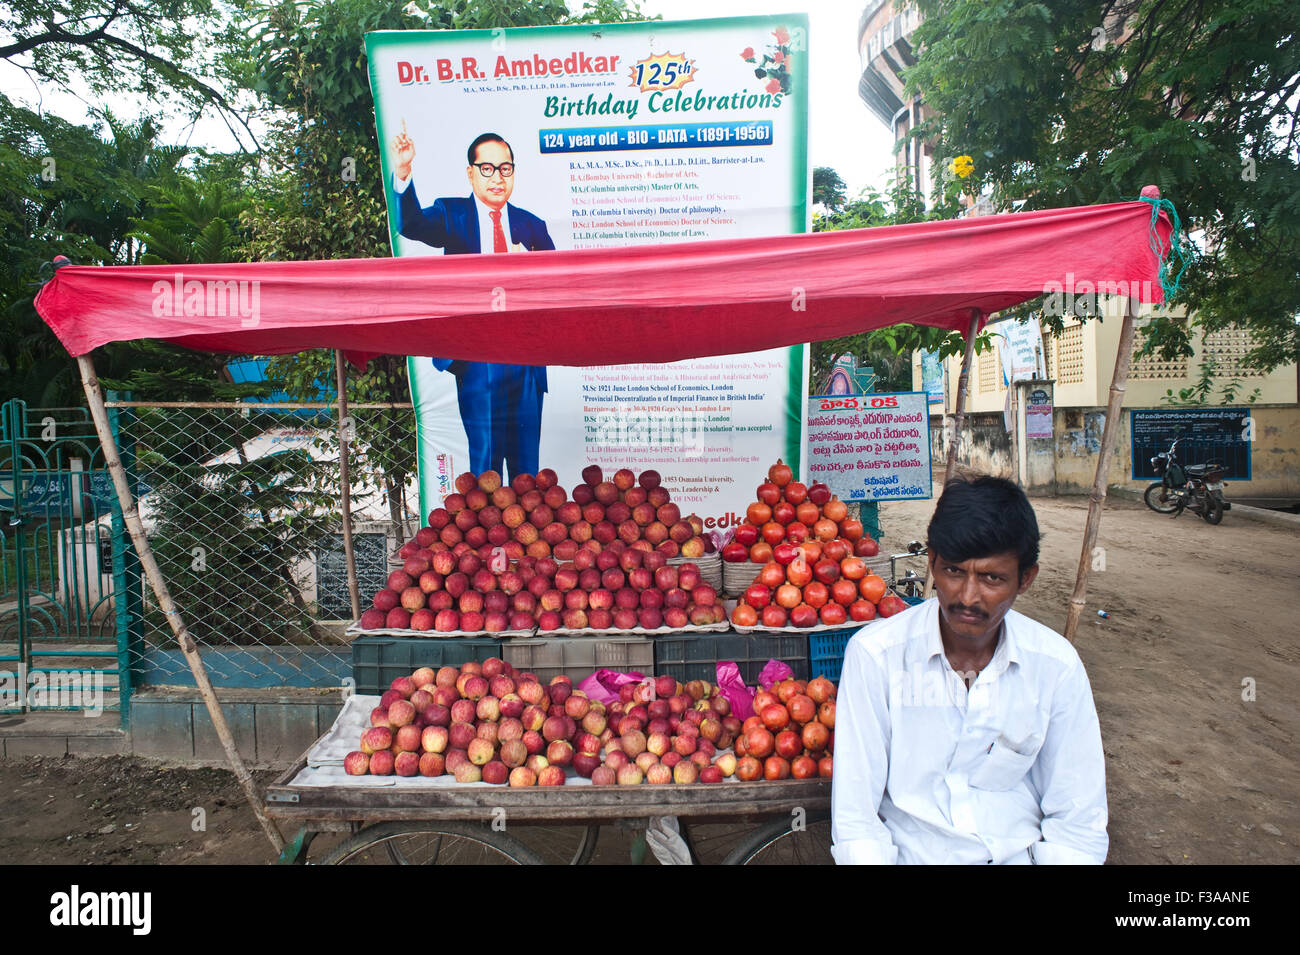 Man selling apples and pomegranates in front of a billboard commemorating B.R. Ambedkar, a renowned indian politician - Stock Image